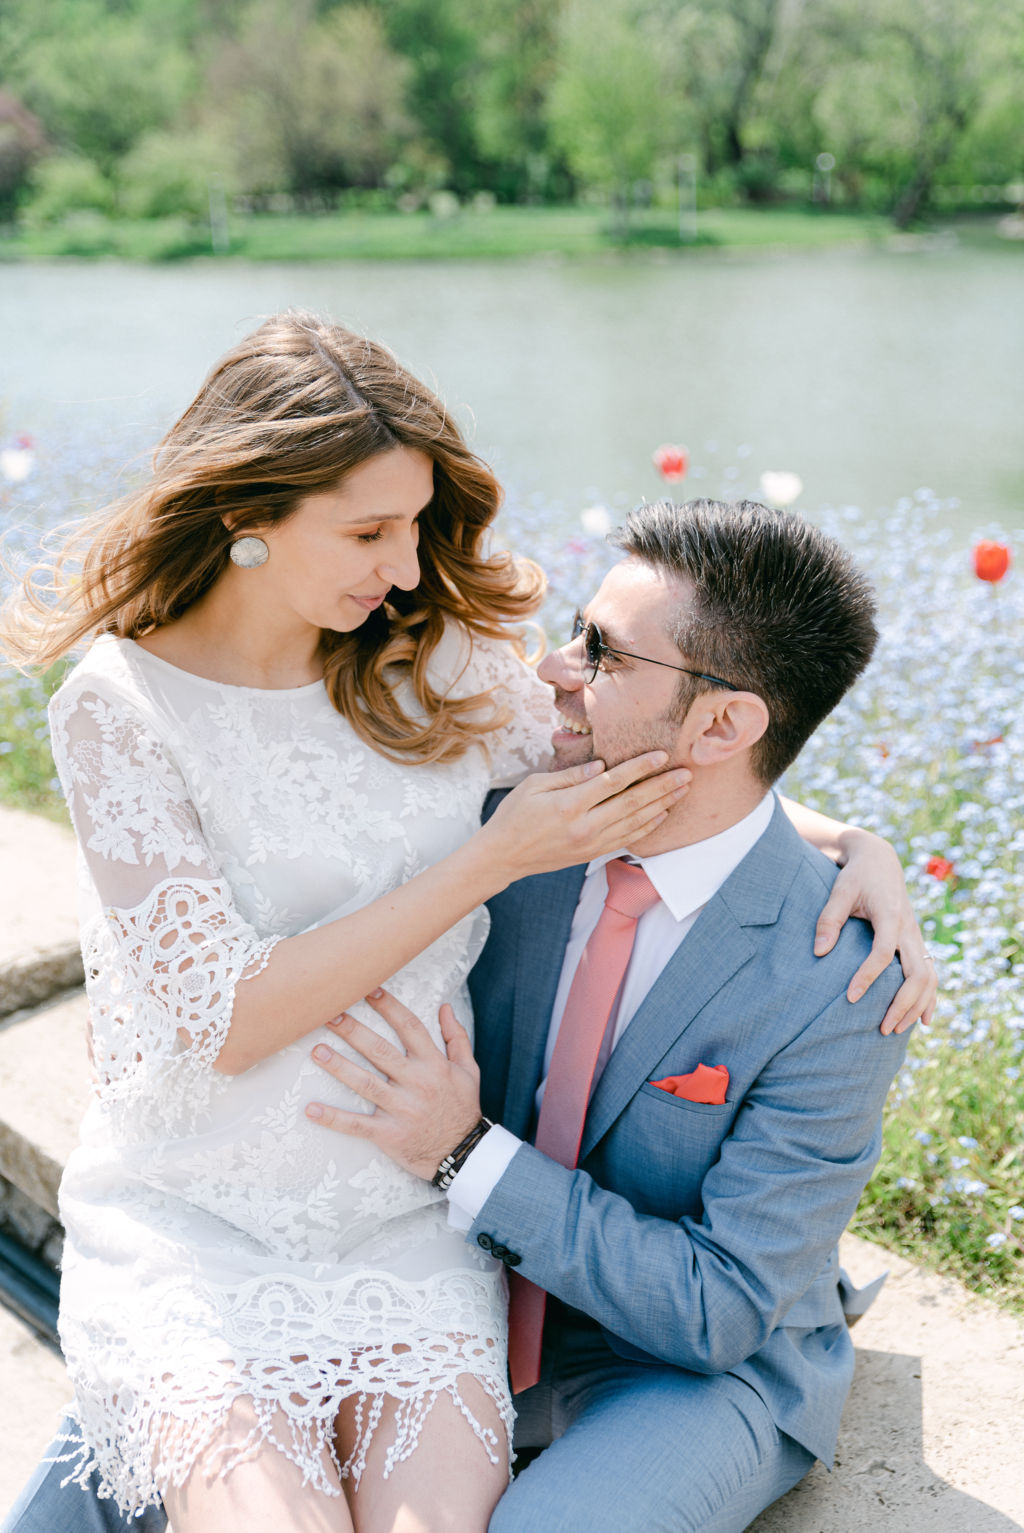 France civil marriage photography